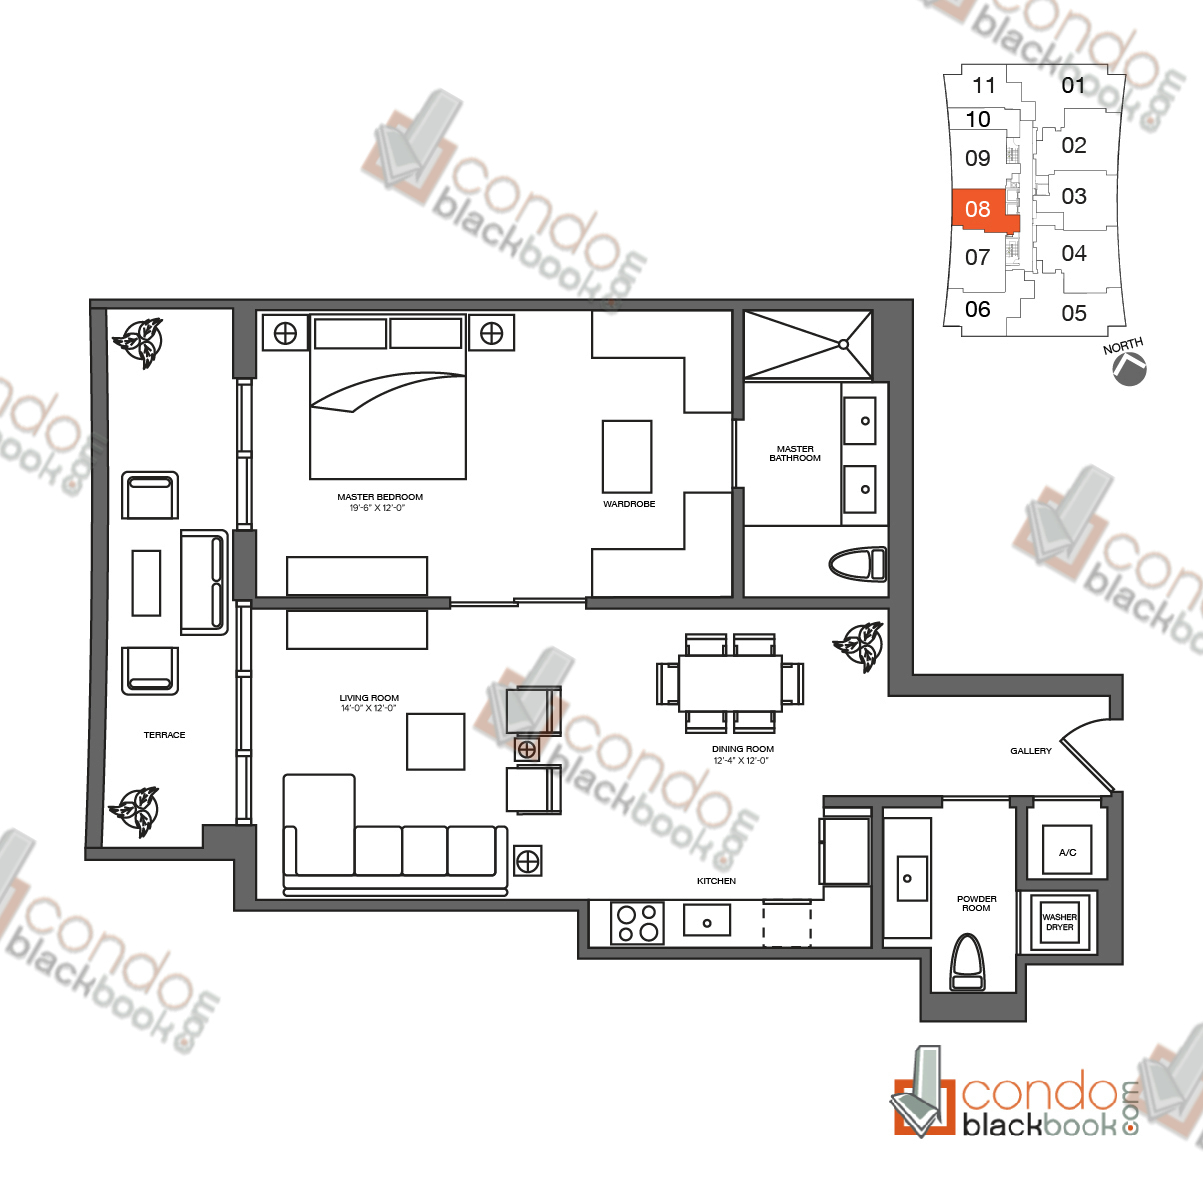 Floor plan for 1010 Brickell Brickell Miami, model H, line 08, 1/1.5 bedrooms, 988 sq ft